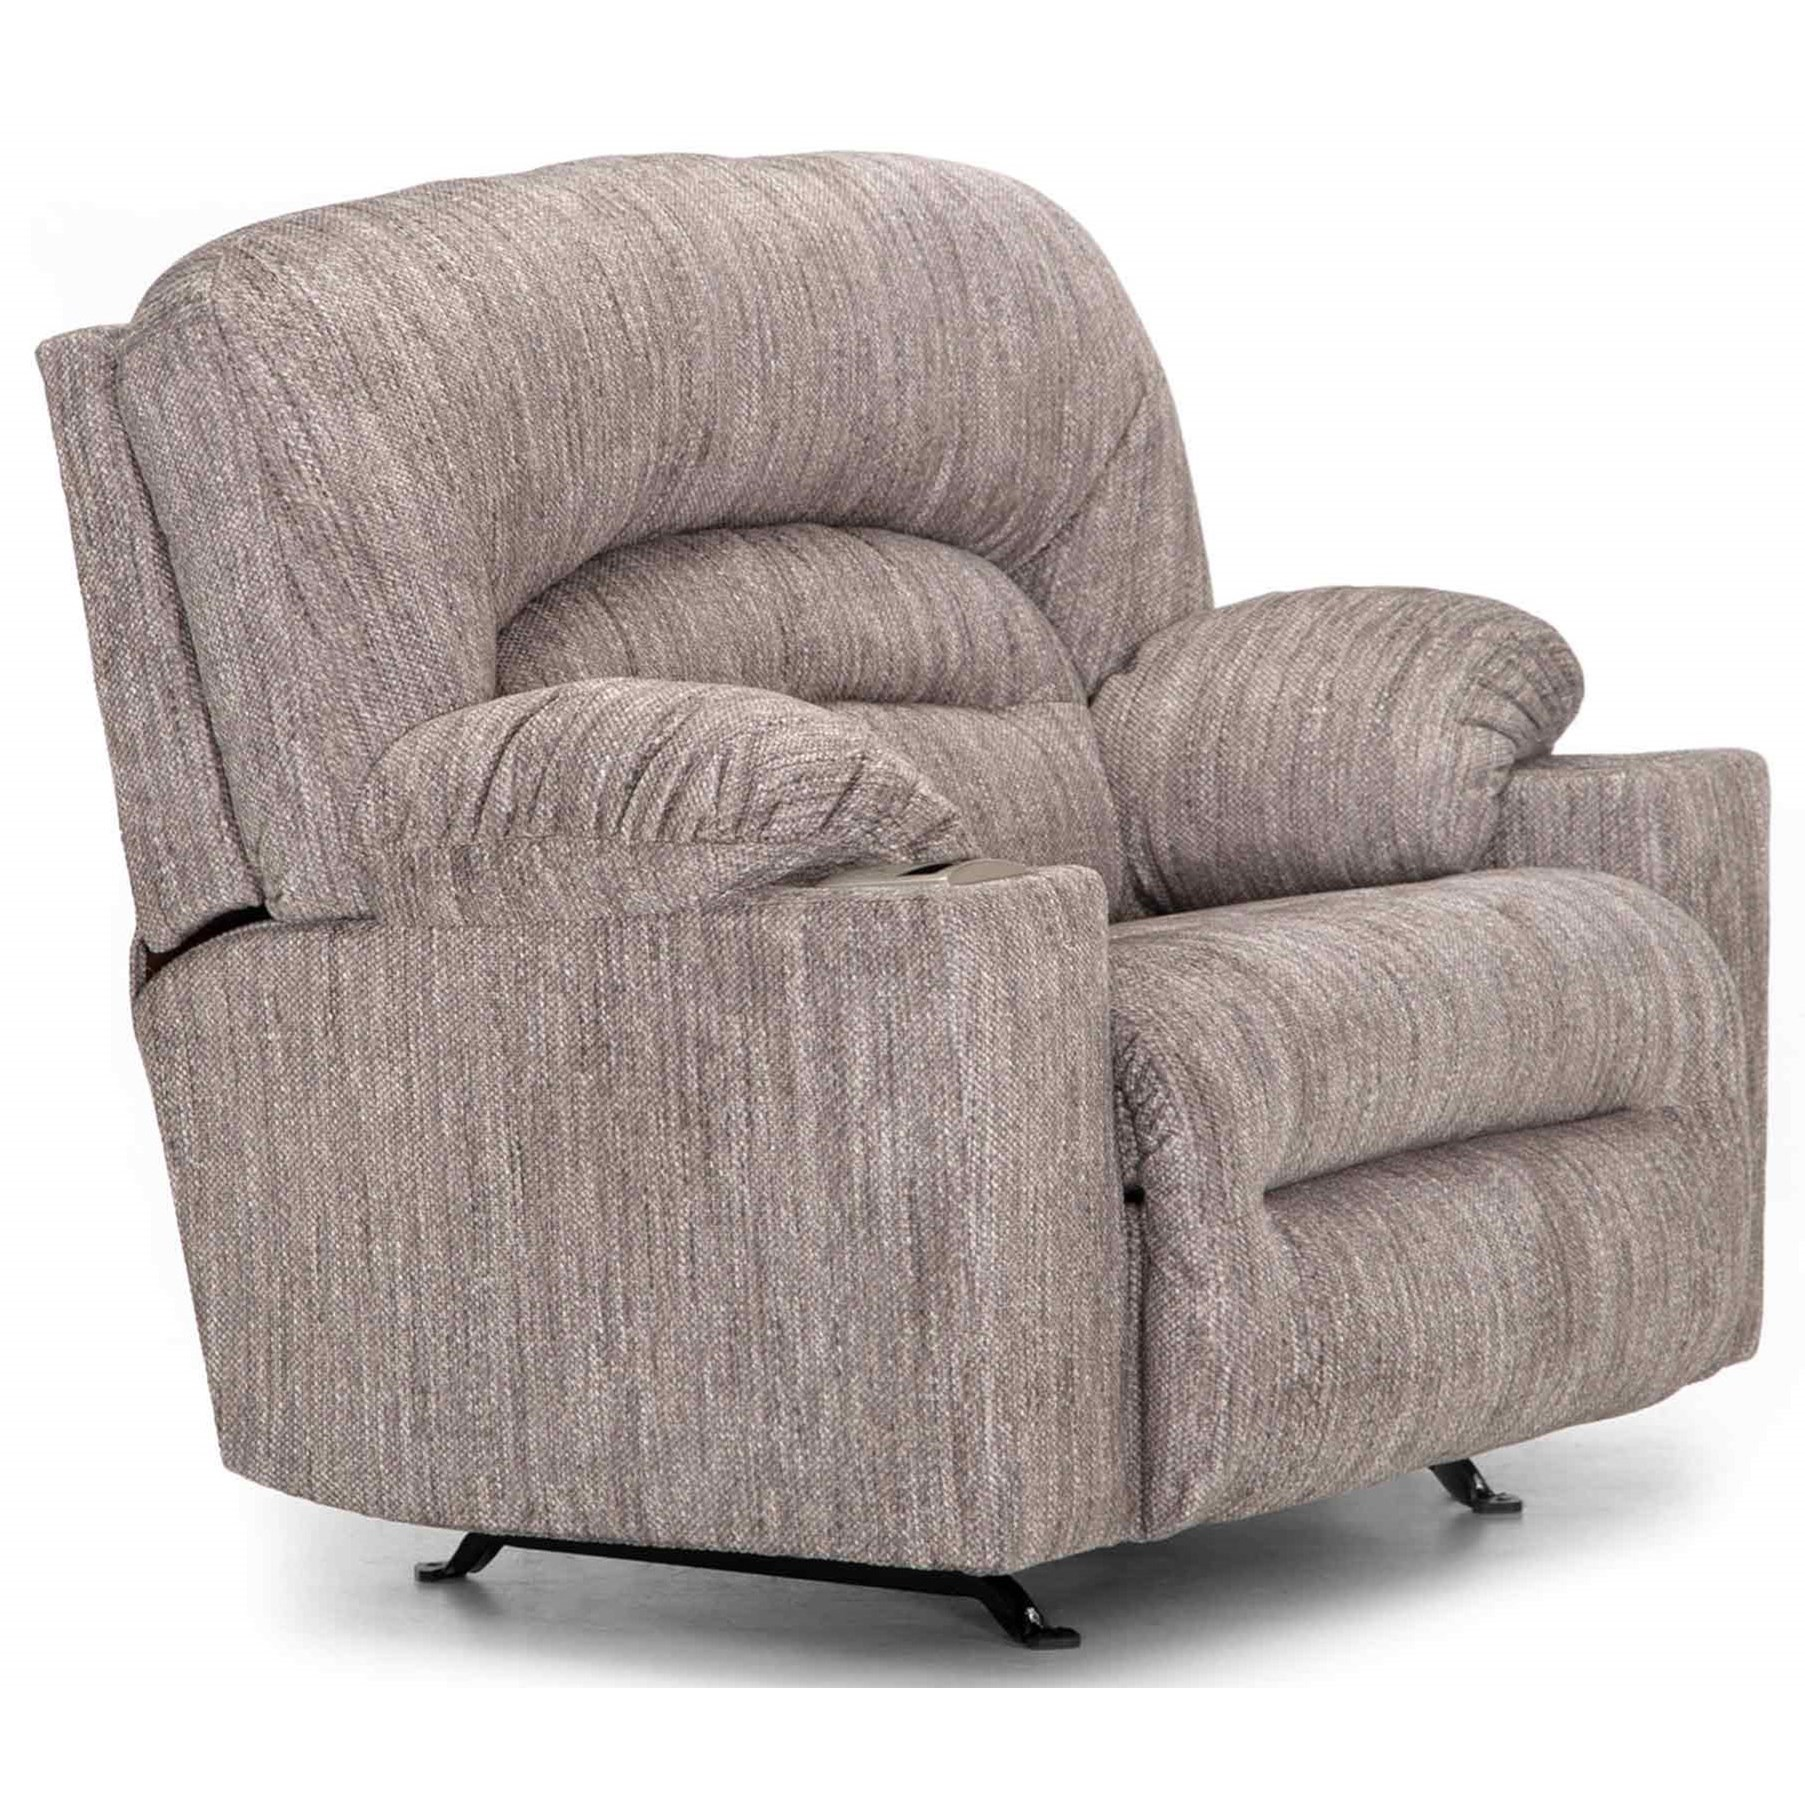 Franklin Recliners Recliner by Franklin at Catalog Outlet